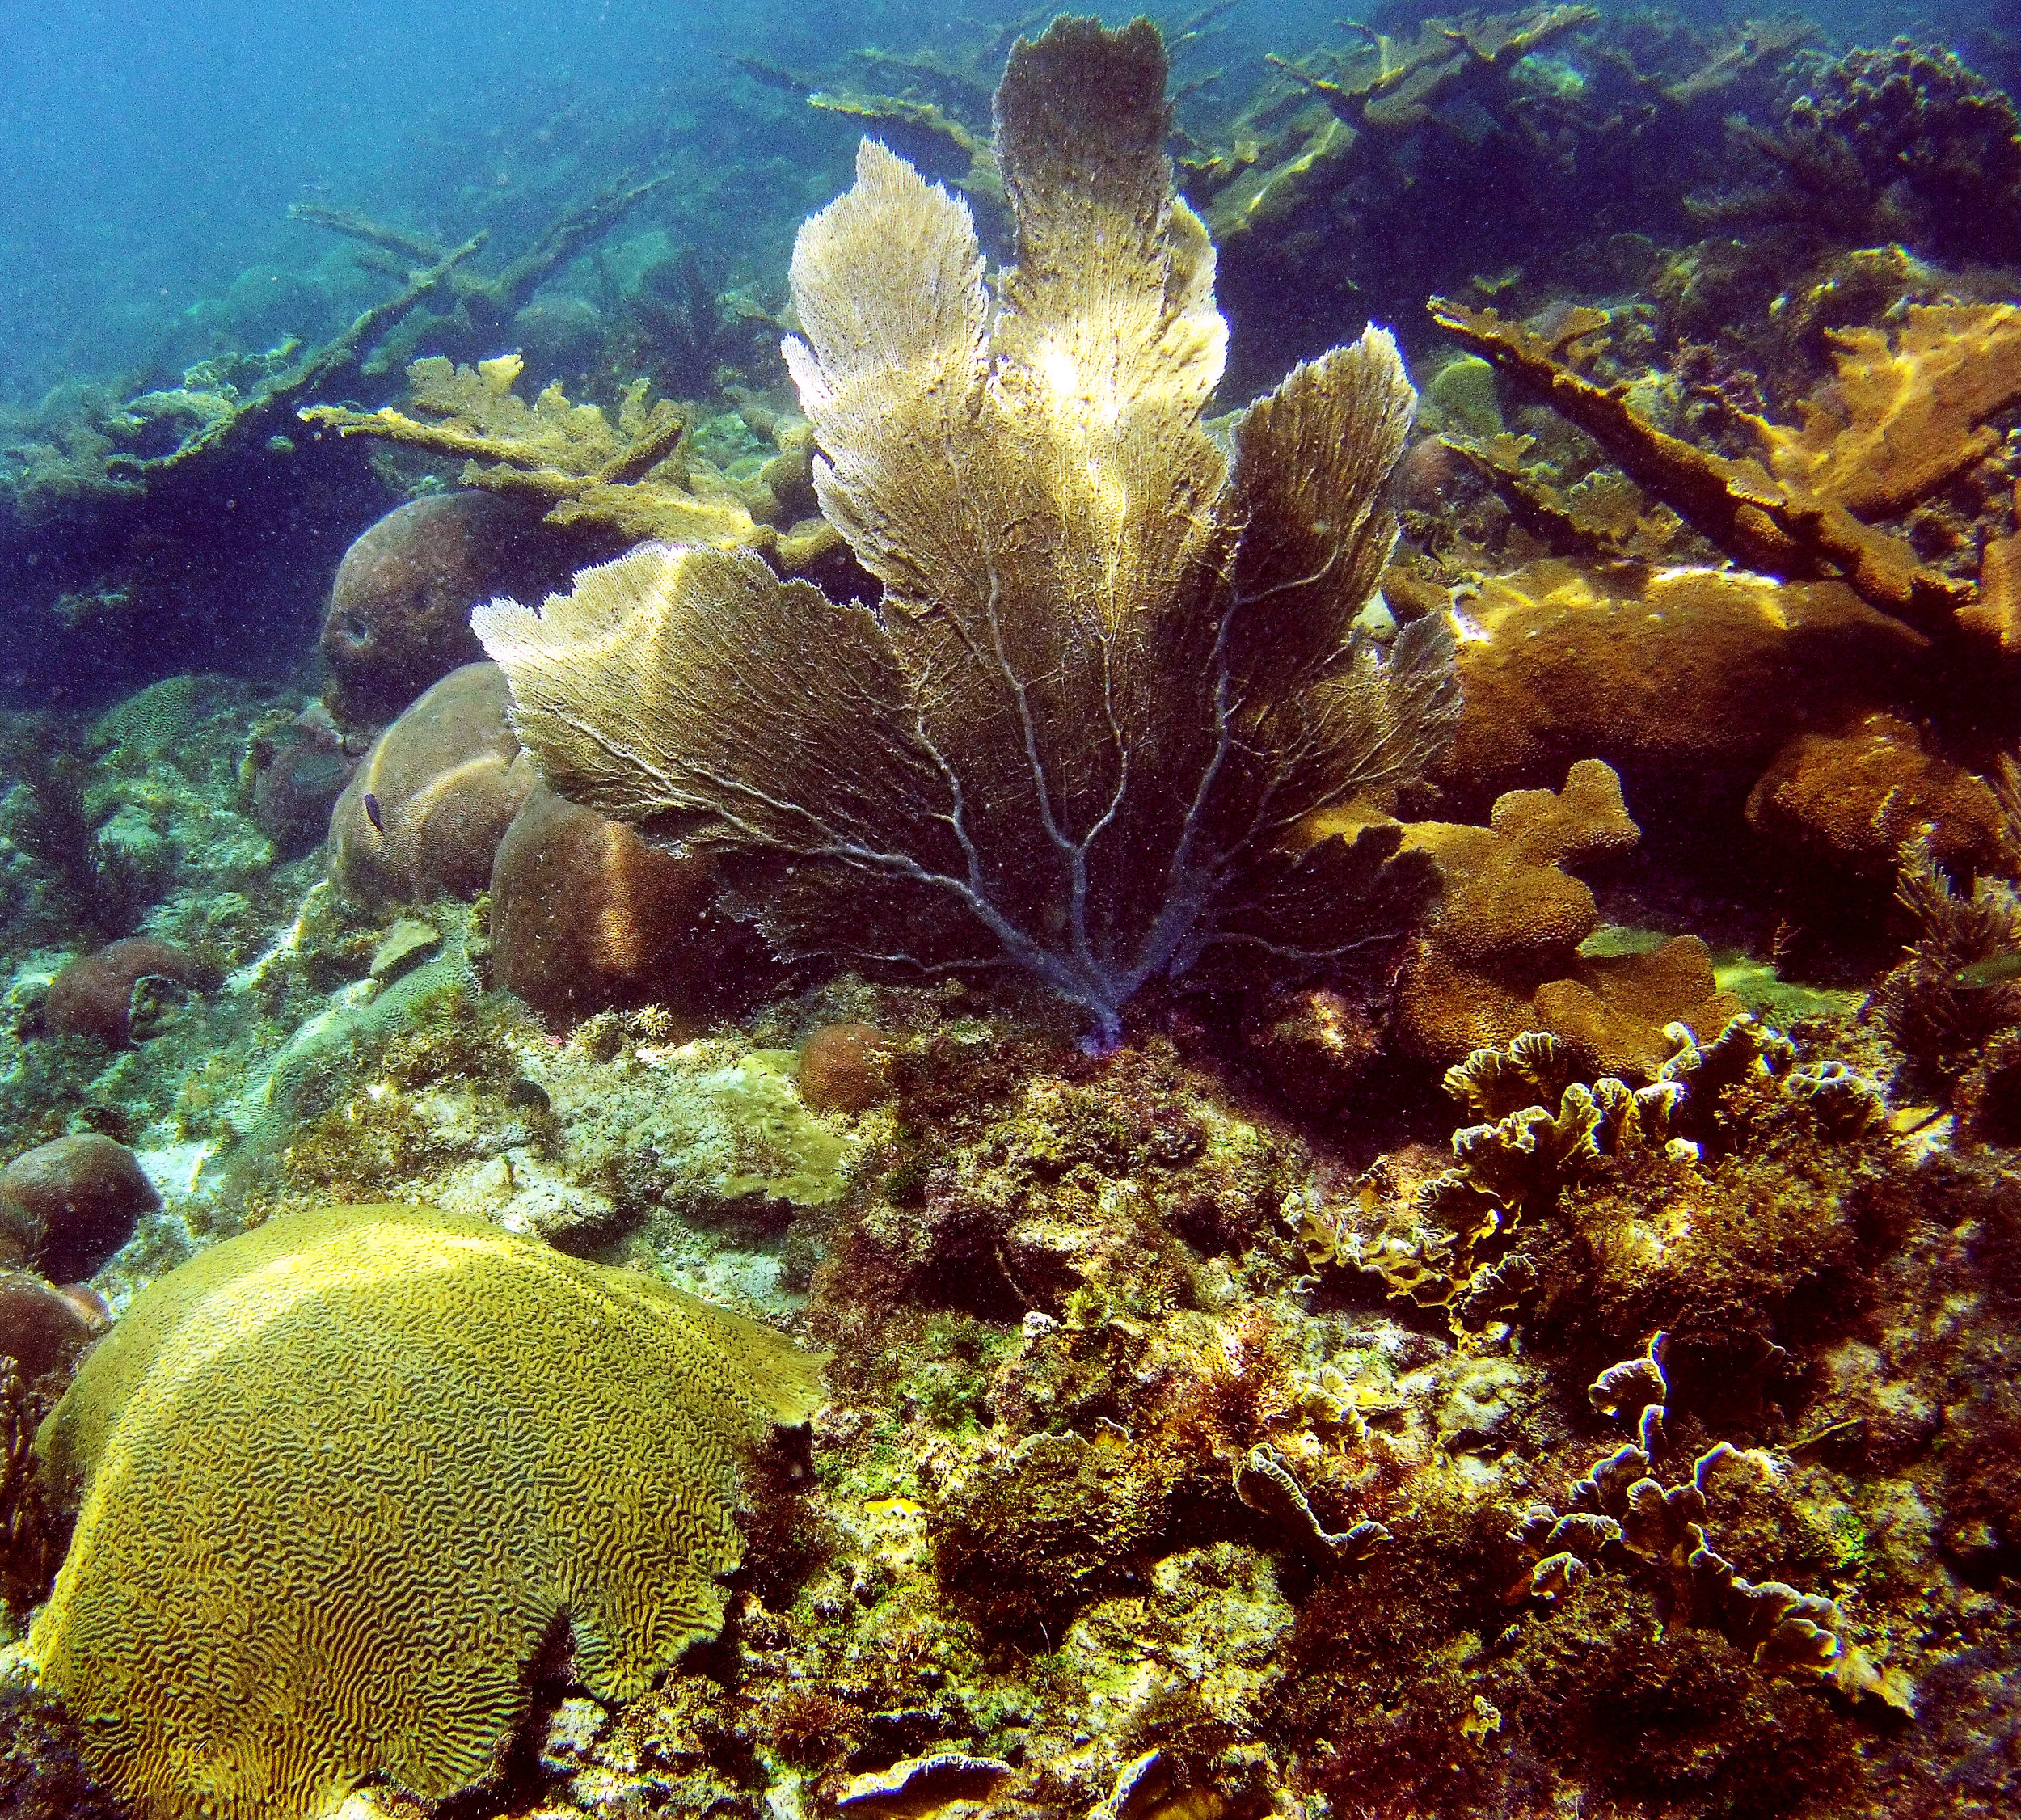 A healthy reef with a variety of hard coral species off the coast of Bocas del Toro, Panama. Few reefs in the Caribbean remain this healthy.